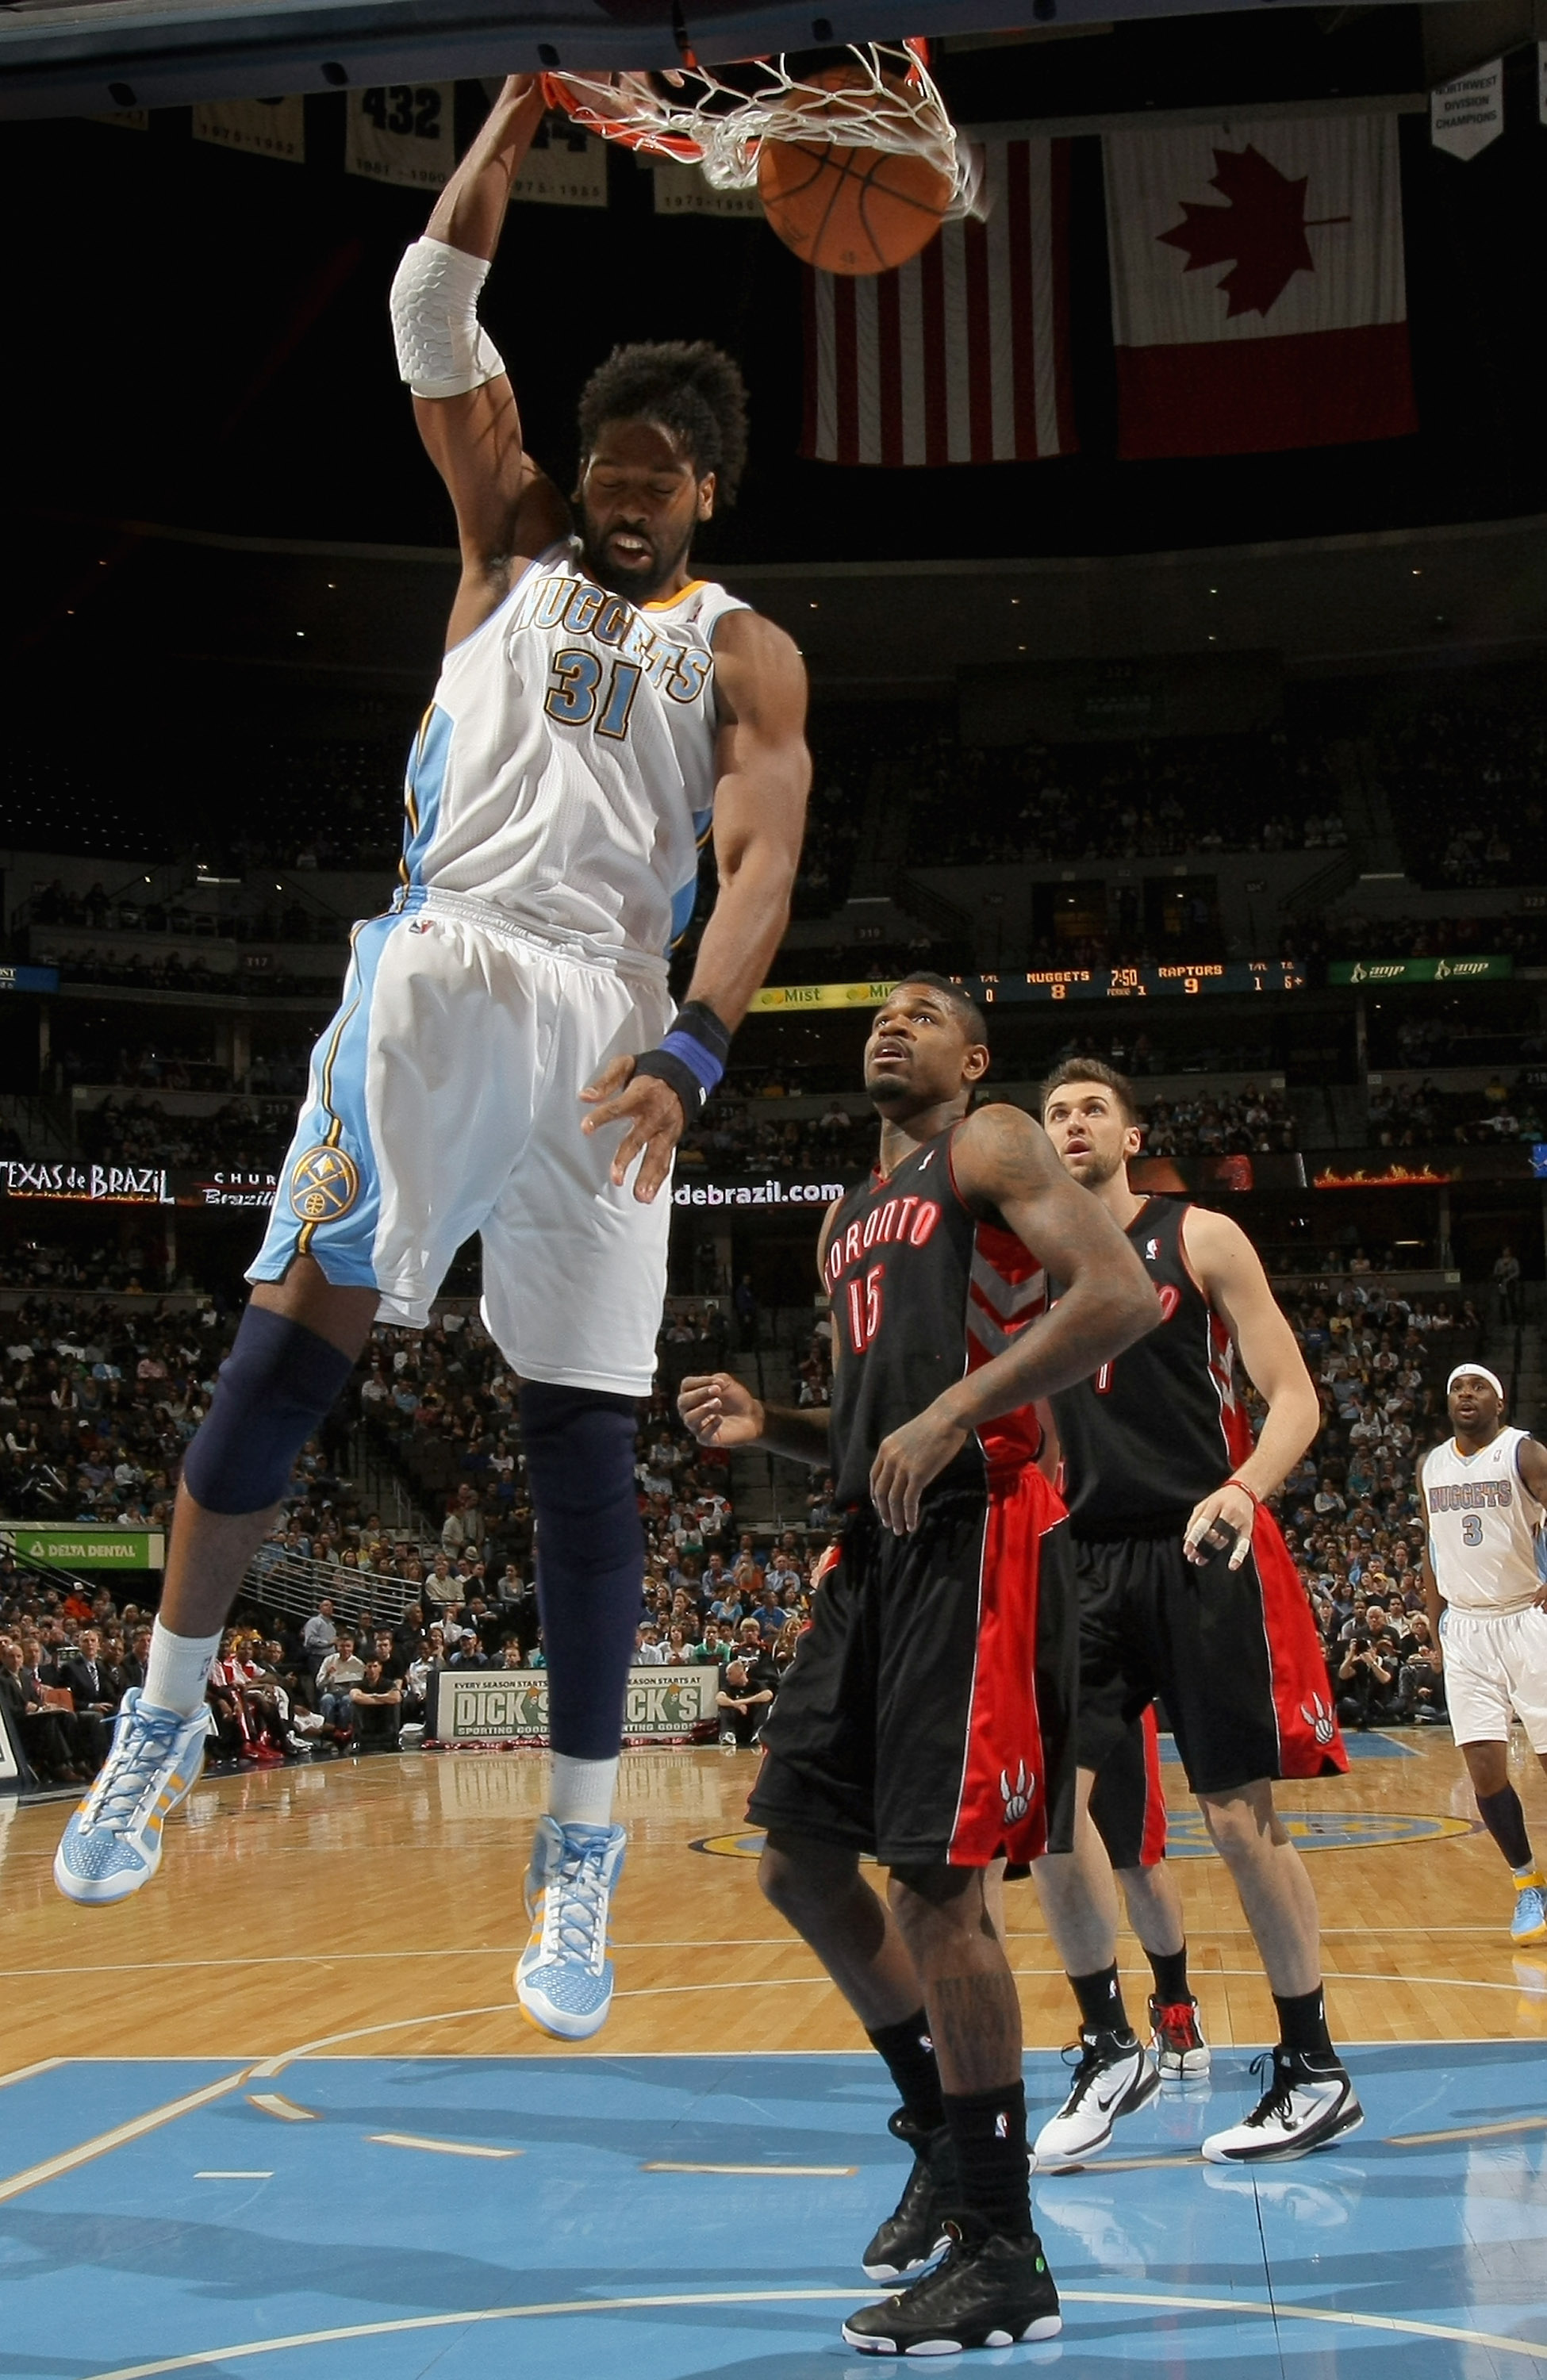 DENVER, CO - MARCH 21:  Nene #31 of the Denver Nuggets dunks the ball in front of Amir Johnson #15 of the Toronto Raptors at the Pepsi Center on March 21, 2011 in Denver, Colorado. NOTE TO USER: User expressly acknowledges and agrees that, by downloading